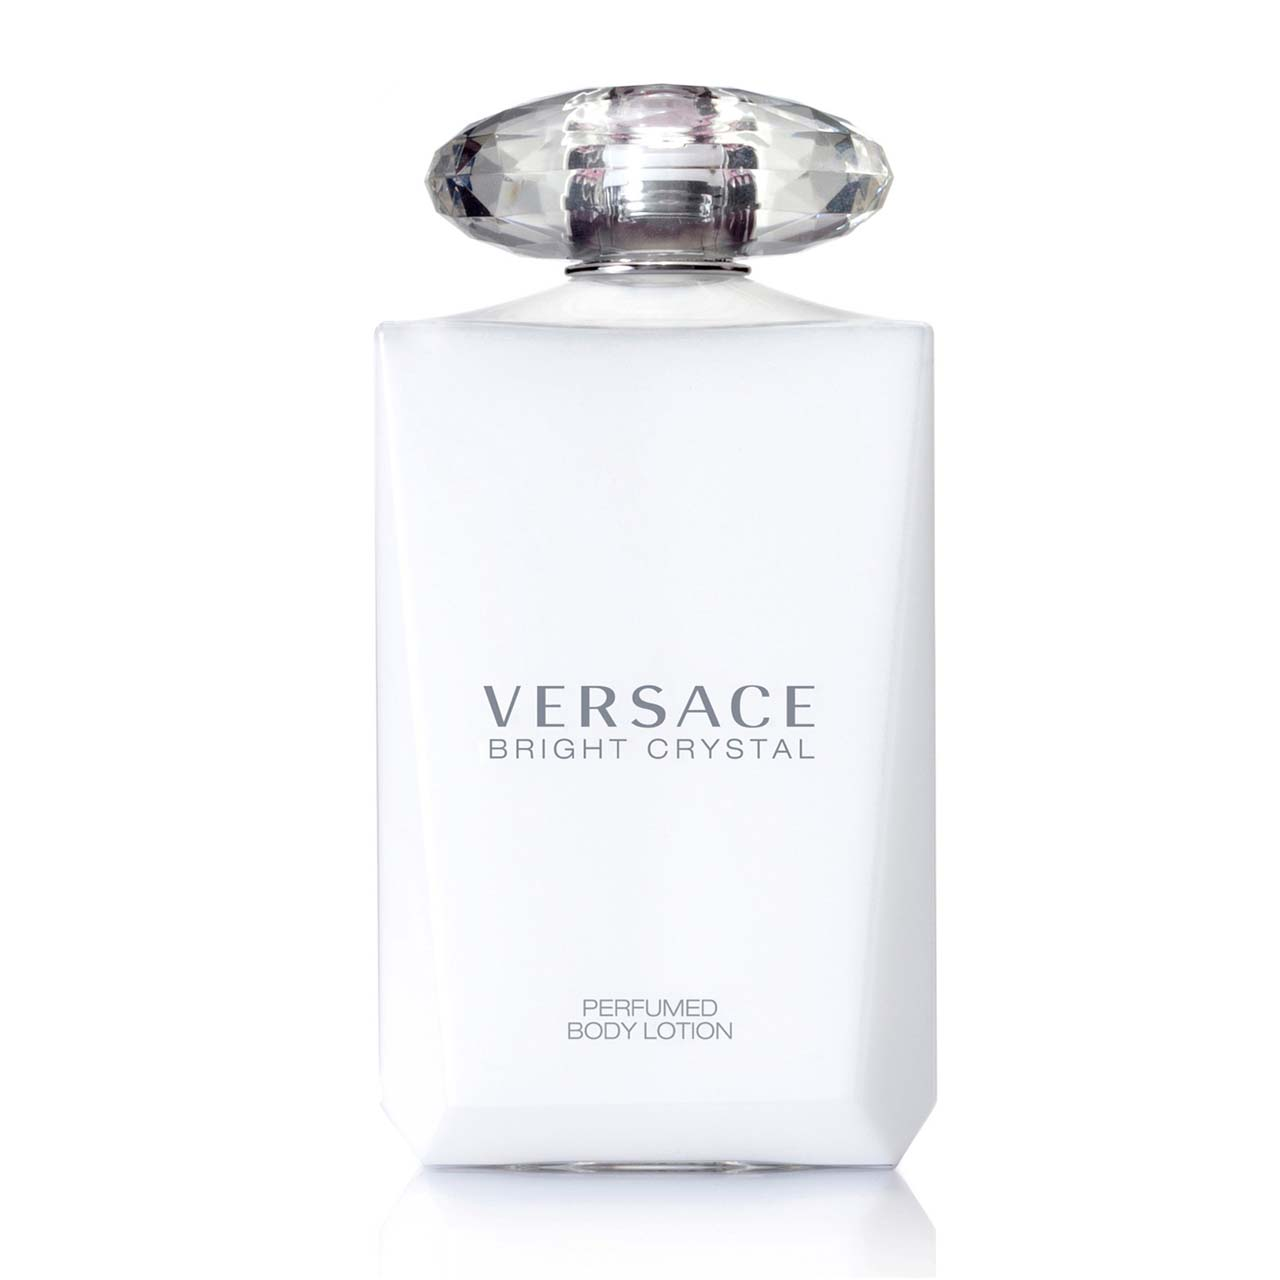 versace_bright_crystal_perfumed_body_lotion_200ml_1373969938